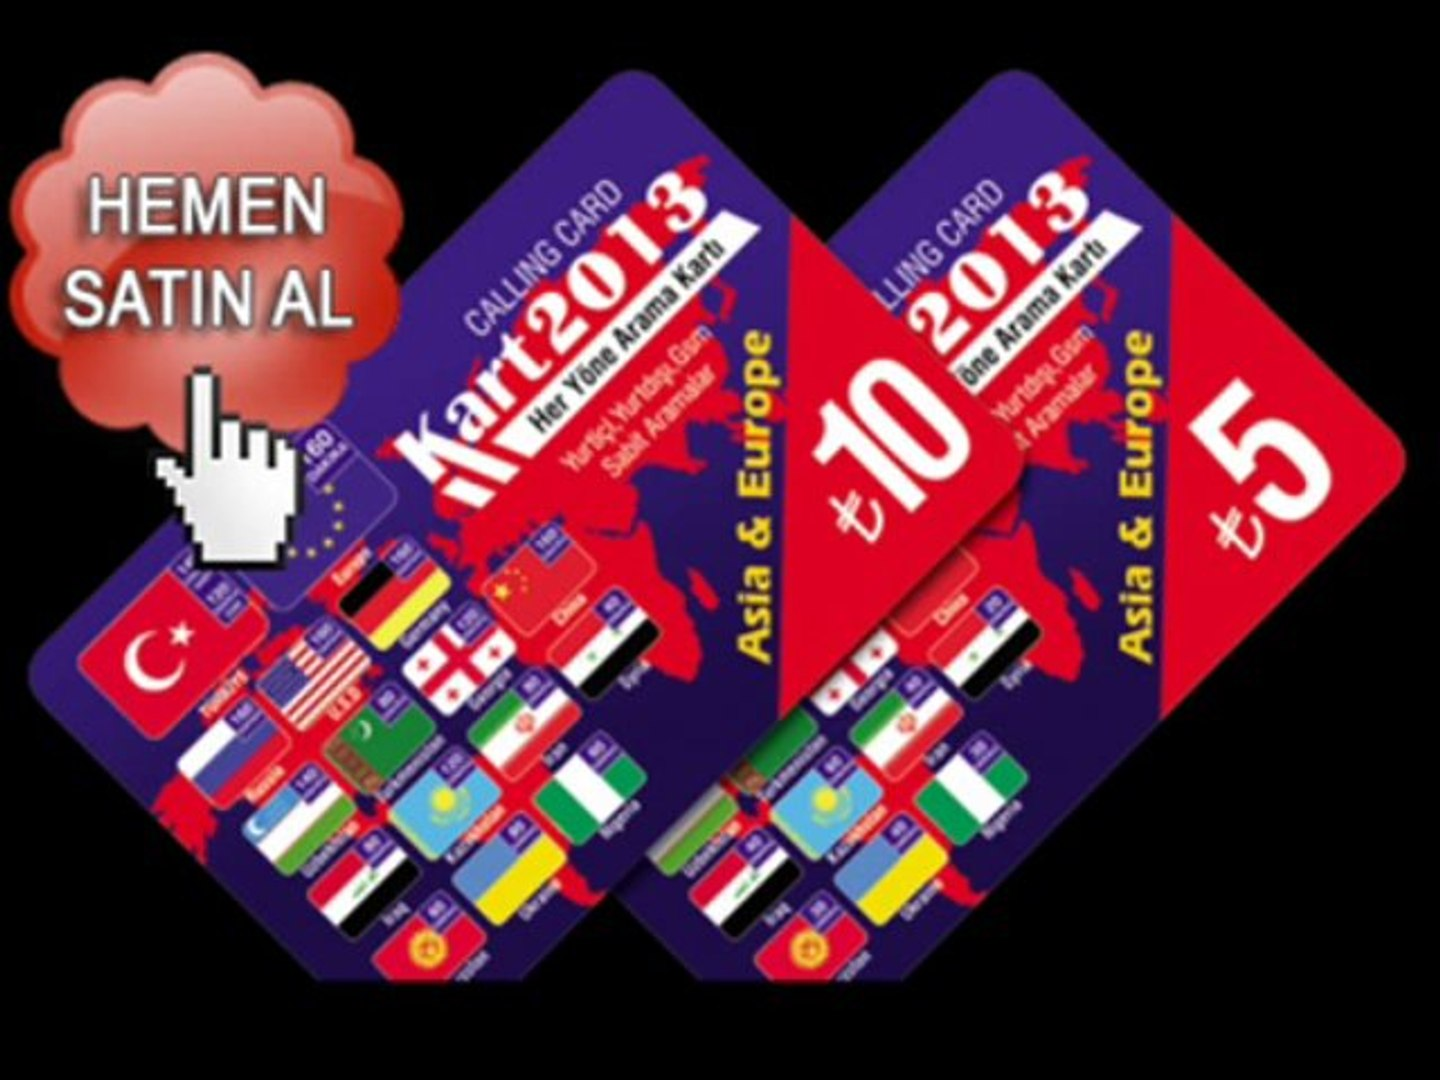 Kart2013,Kart2013,Kart2013,Kart2013::International Phone Cards